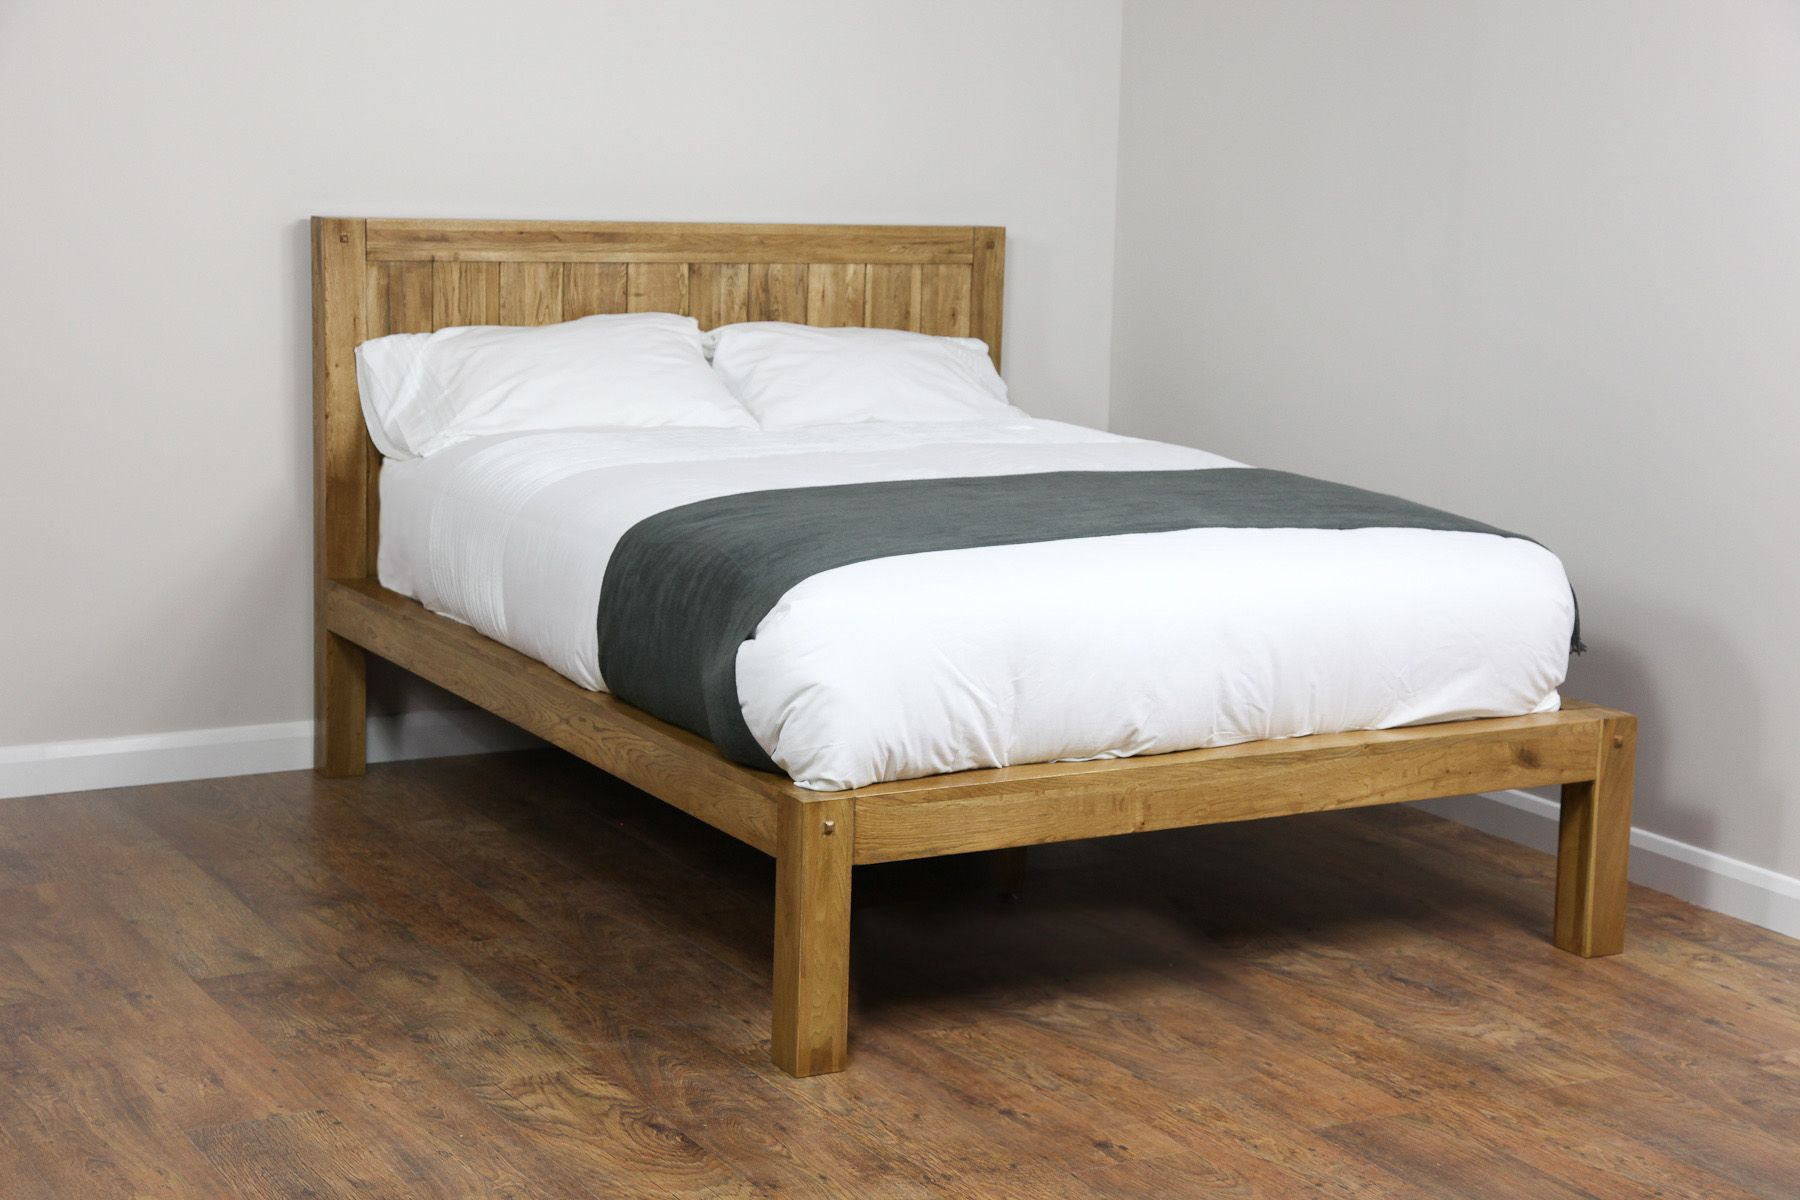 Oak Furniture Land Beds Quercus Solid Oak Furniture Range Bedroom Oak Double Bed Frame